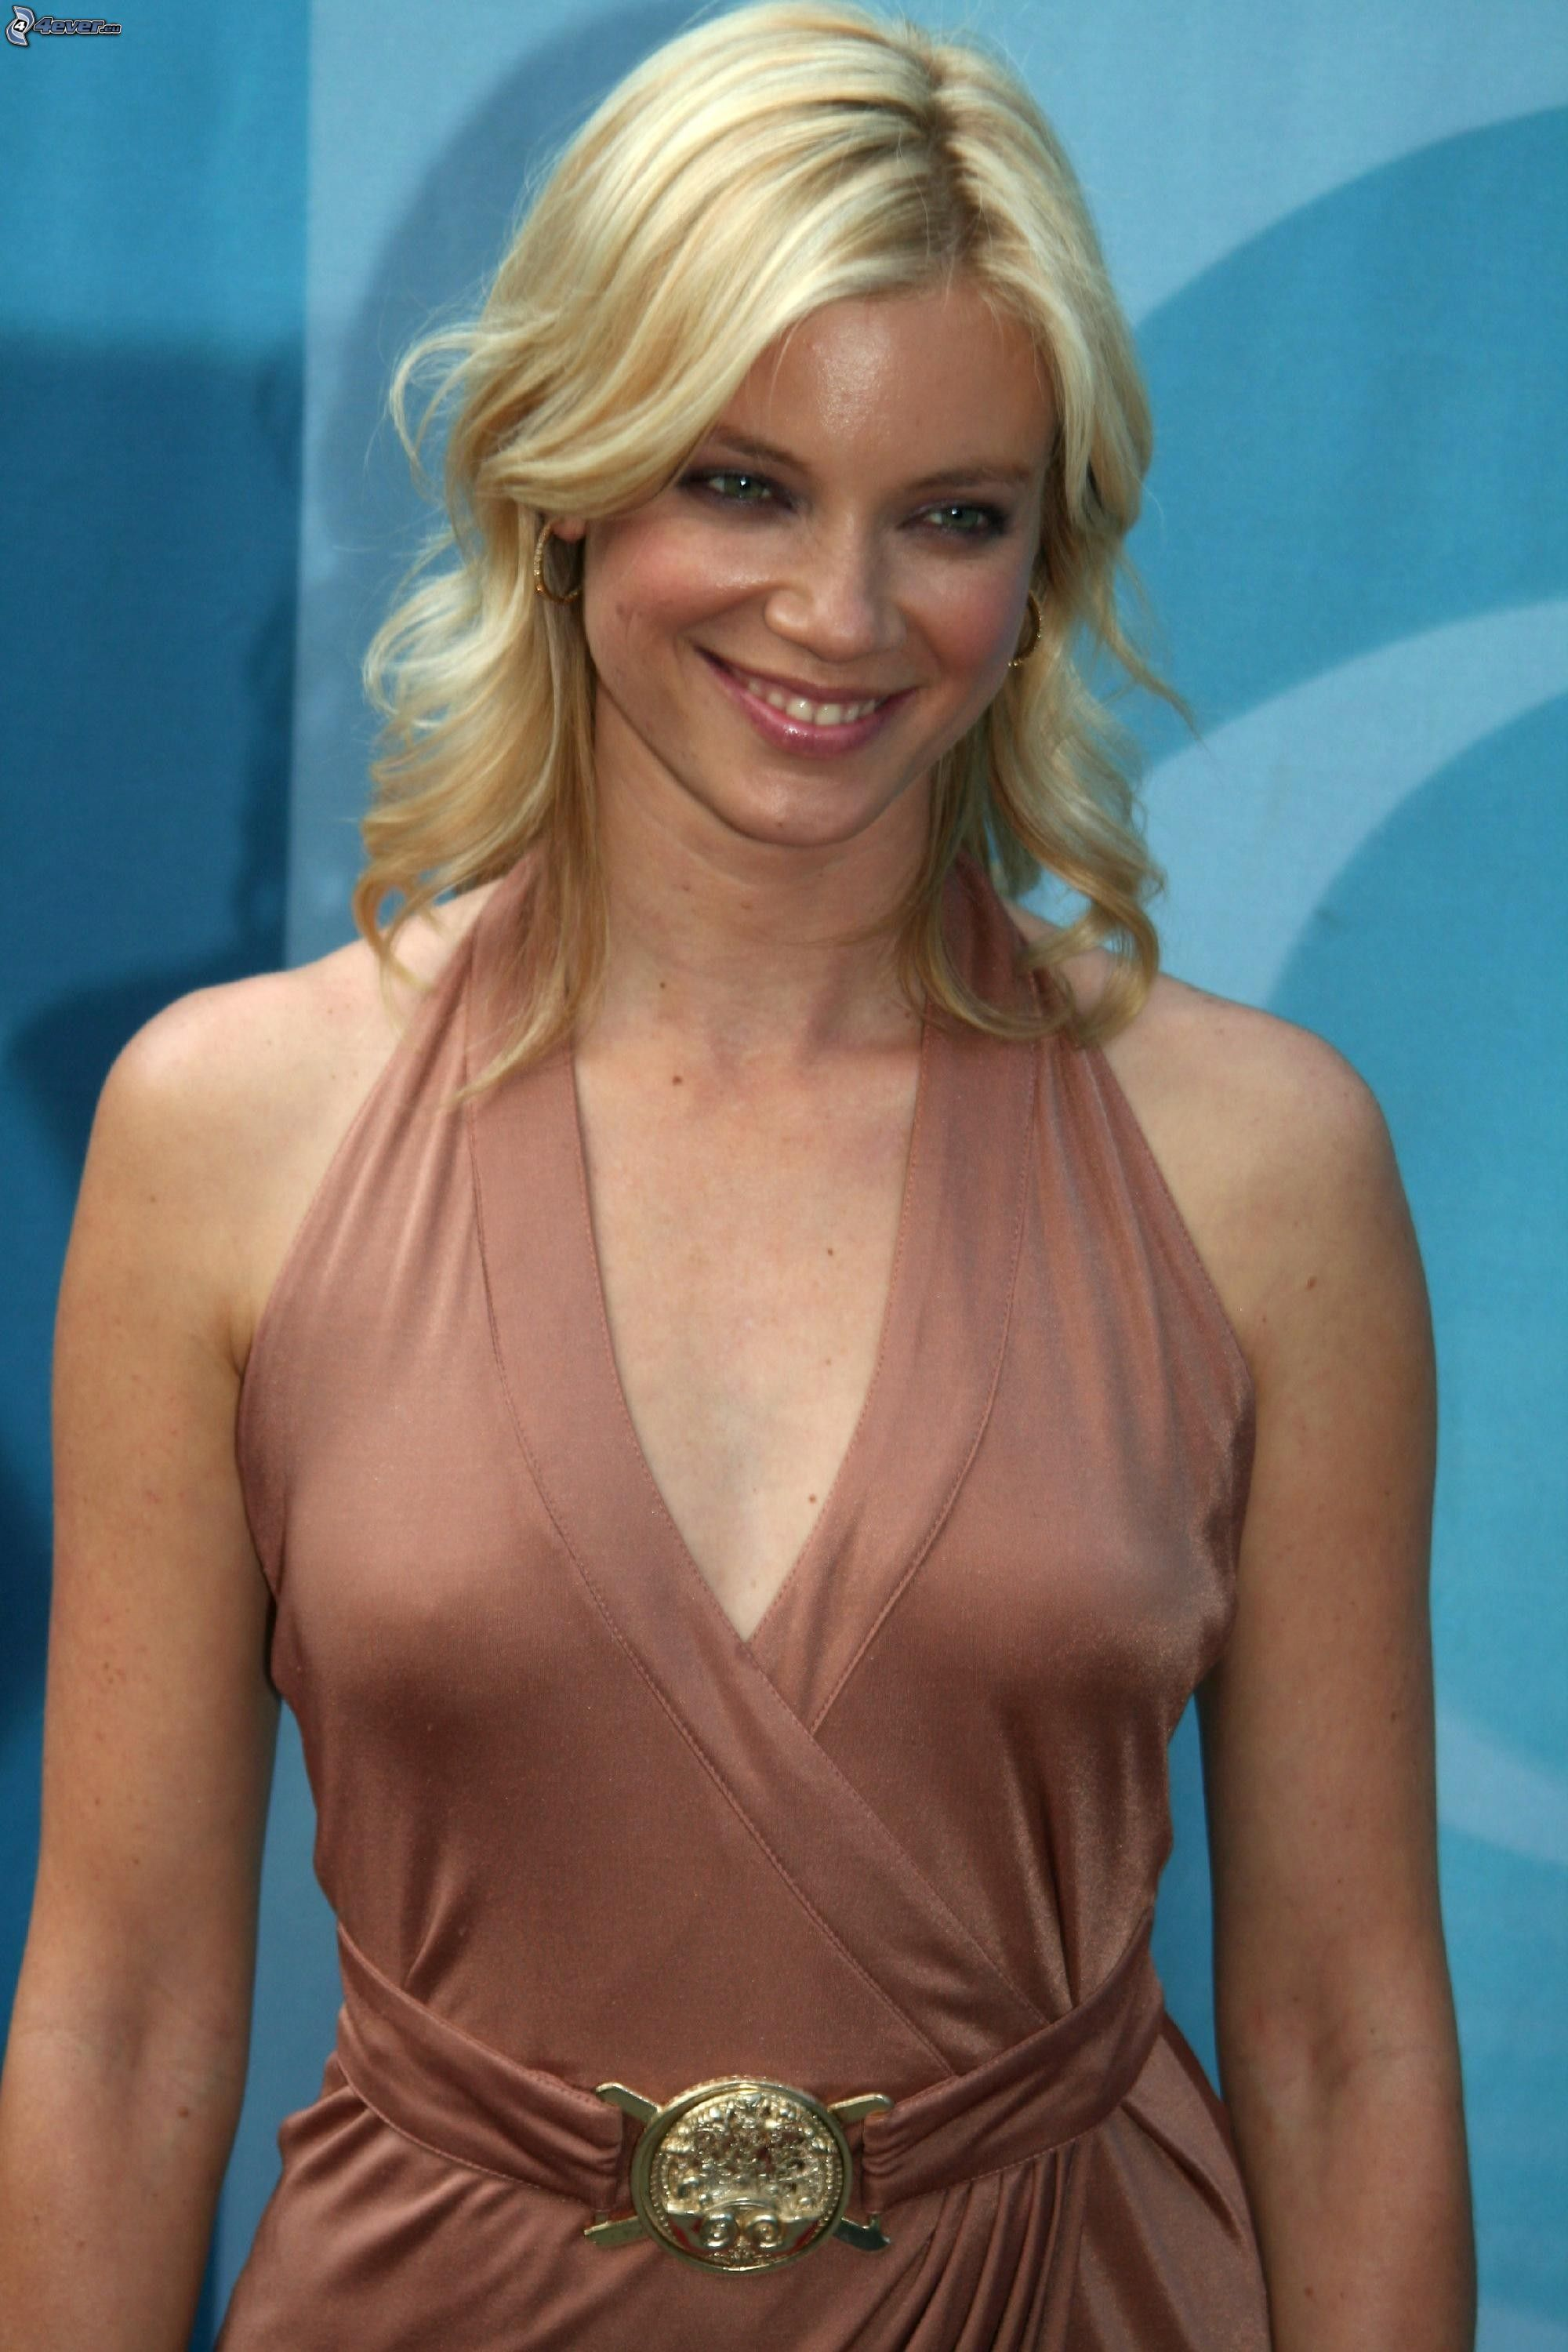 Nude Photos Of Amy Smart 52